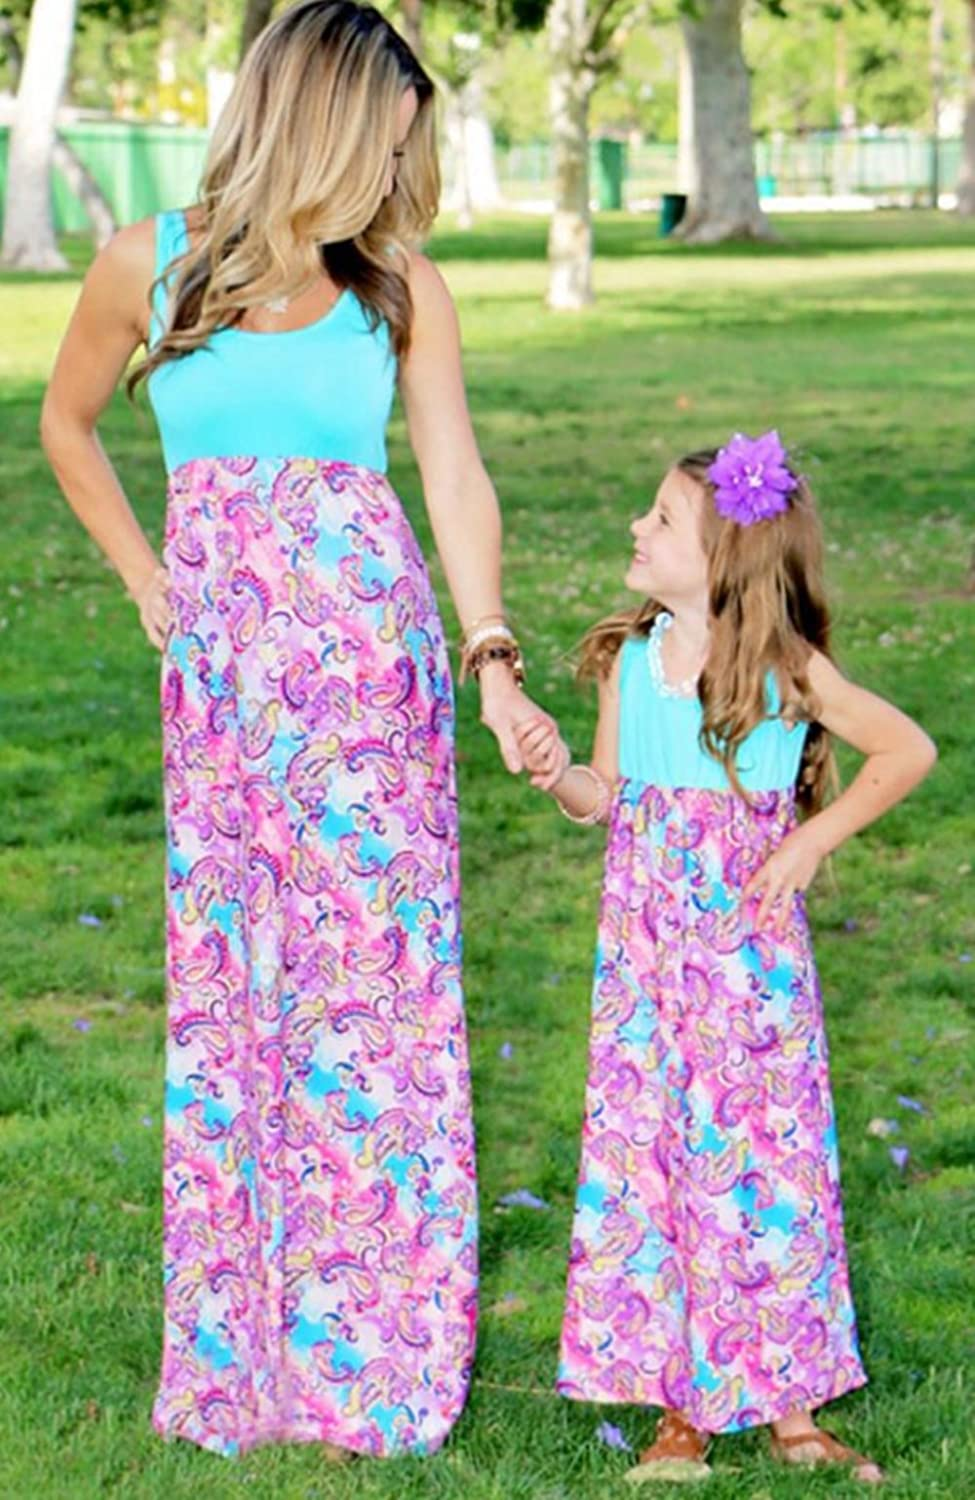 f2d6dc2e7994 Amazon.com: Mommy and Me Fashion Floral Print Sleeveless Dress Beach Party  Maxi Sundress: Clothing